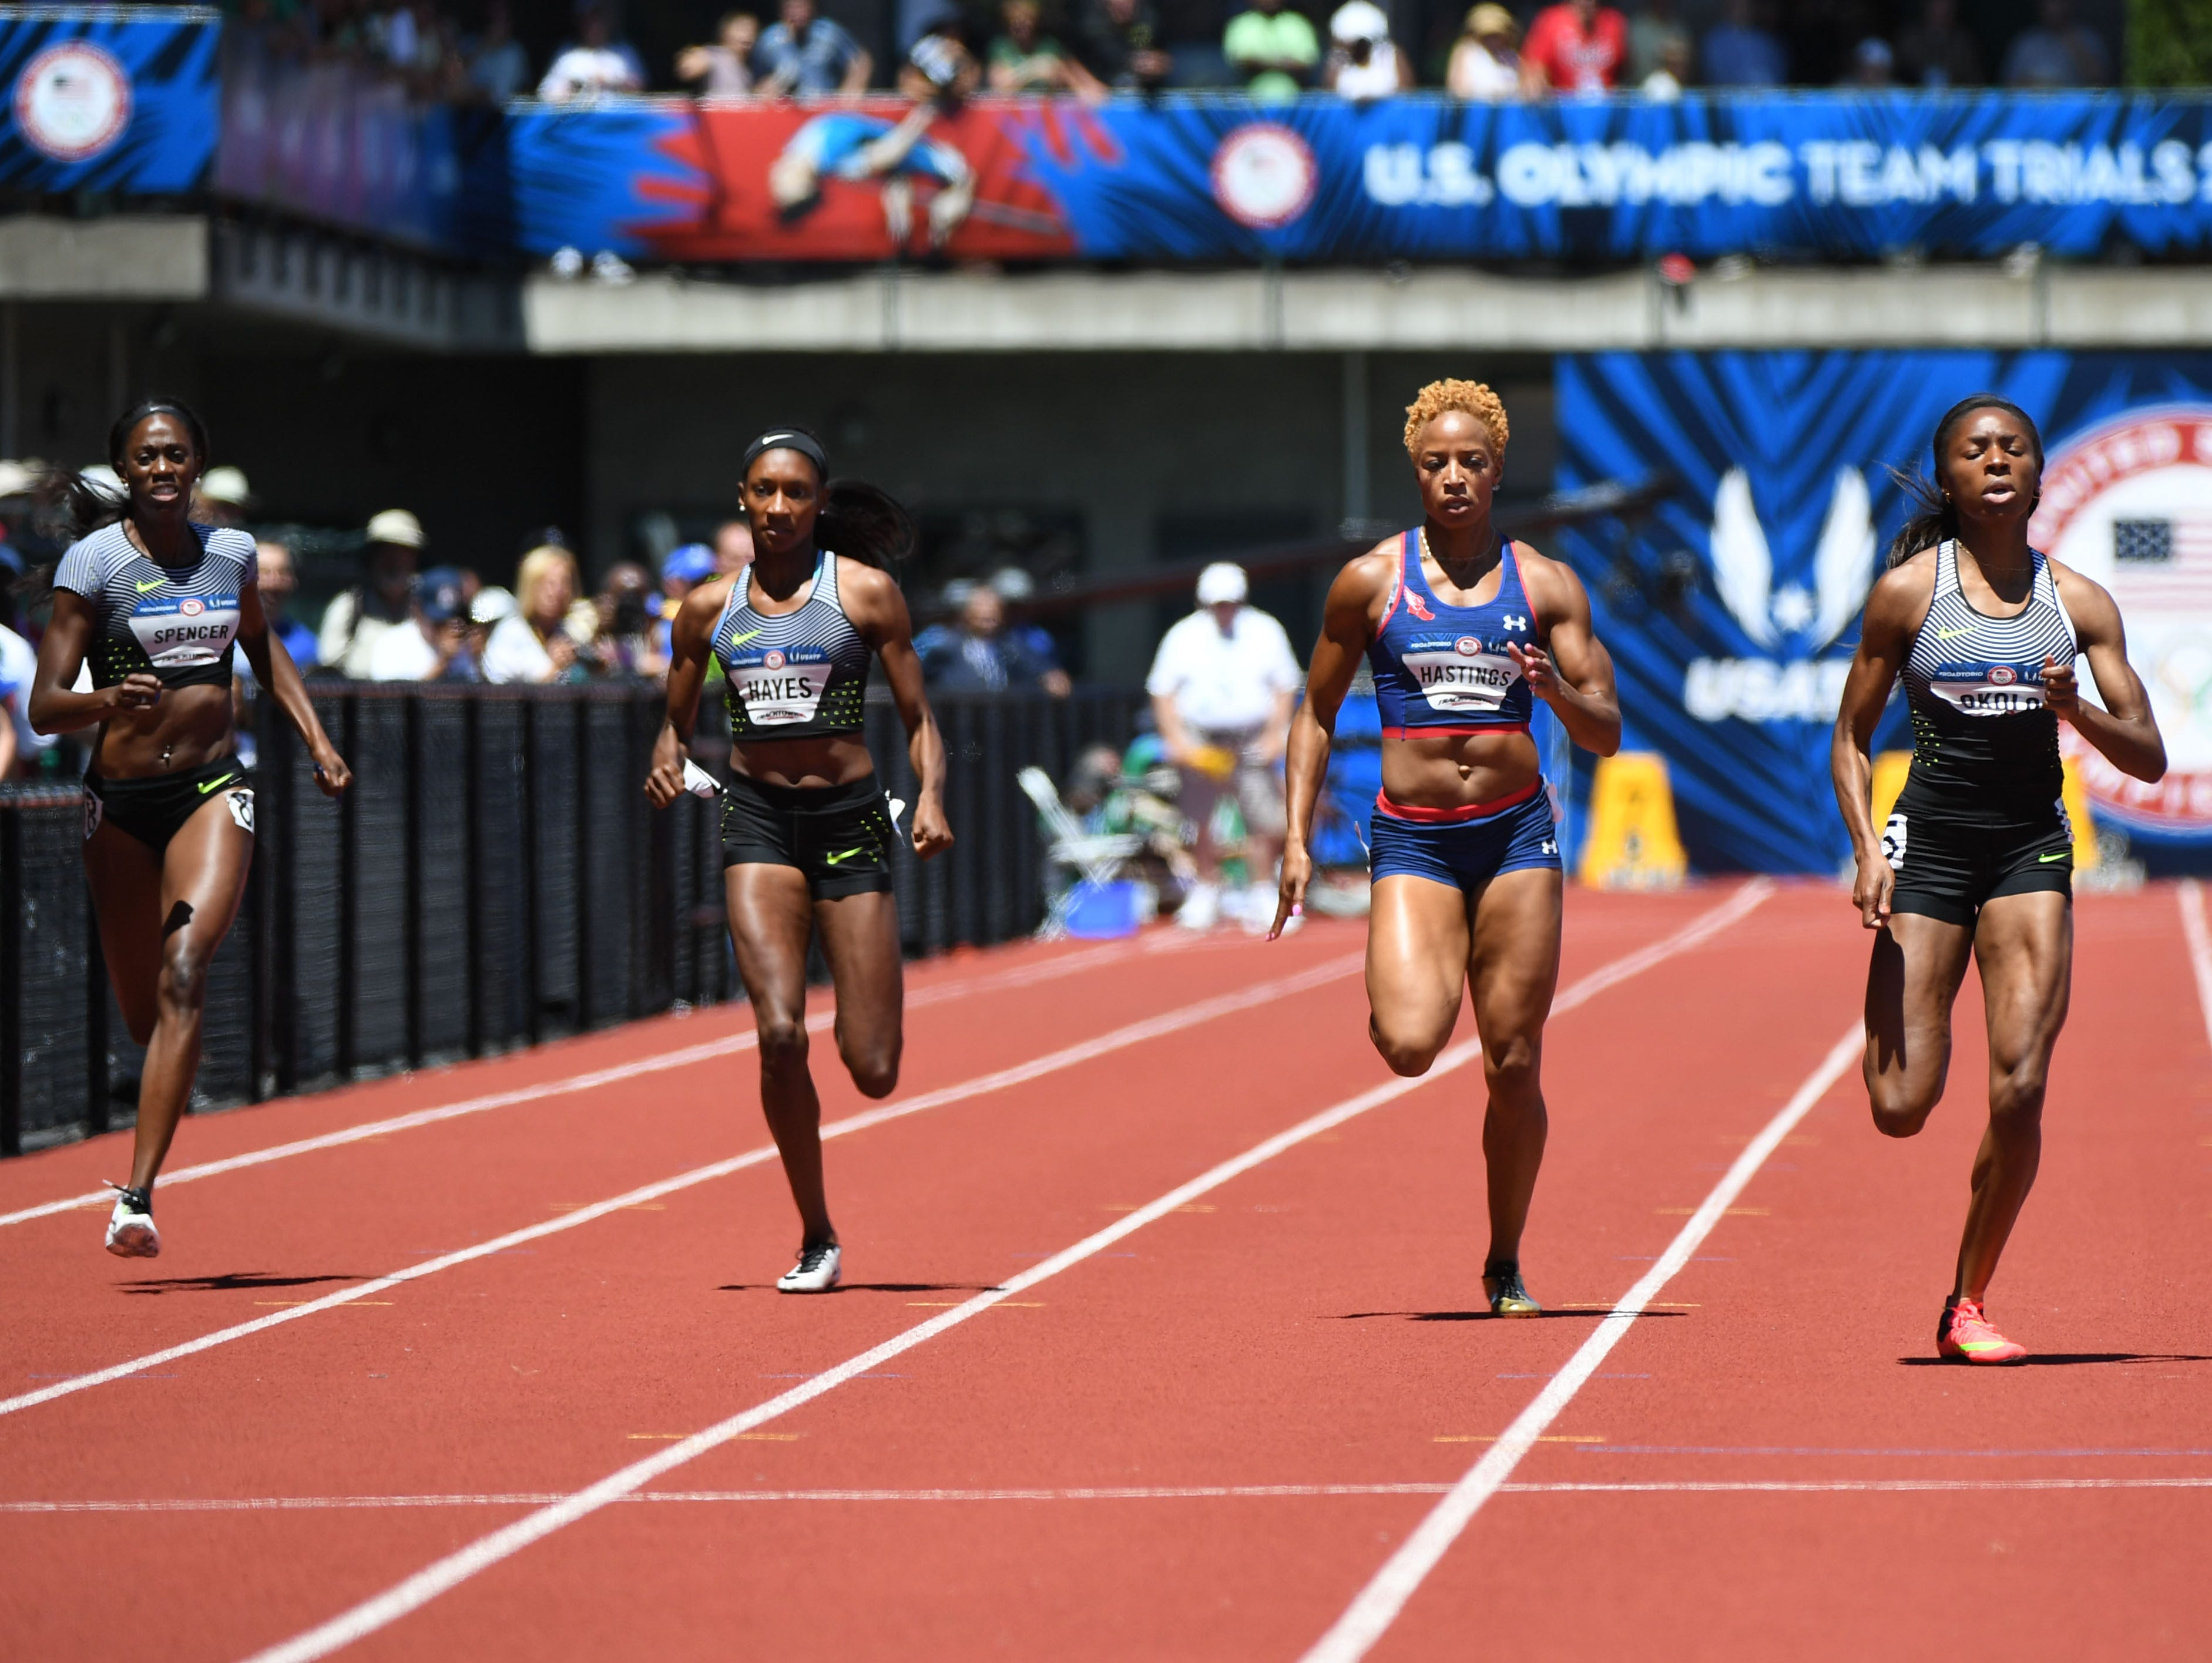 Jul 2, 2016; Eugene, OR, USA; Ashley Spencer (far left) and Natasha Hastings (middle) and Courtney Okolo (right) compete during the women's 400m semifinals in the 2016 U.S. Olympic track and field team trials at Hayward